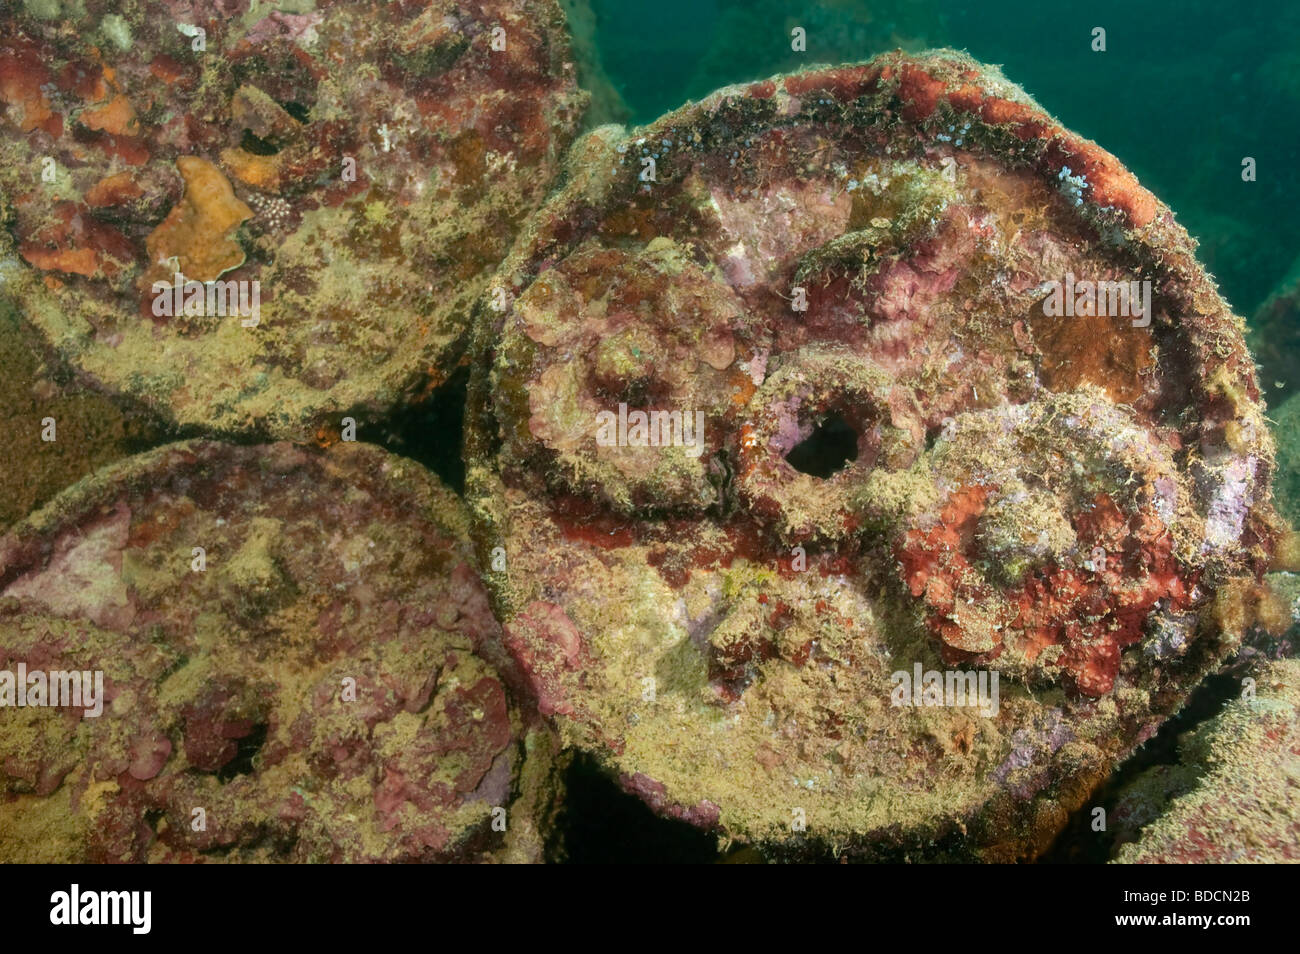 Depth Charges from World War II on the Helmet Wreck in Palau. - Stock Image